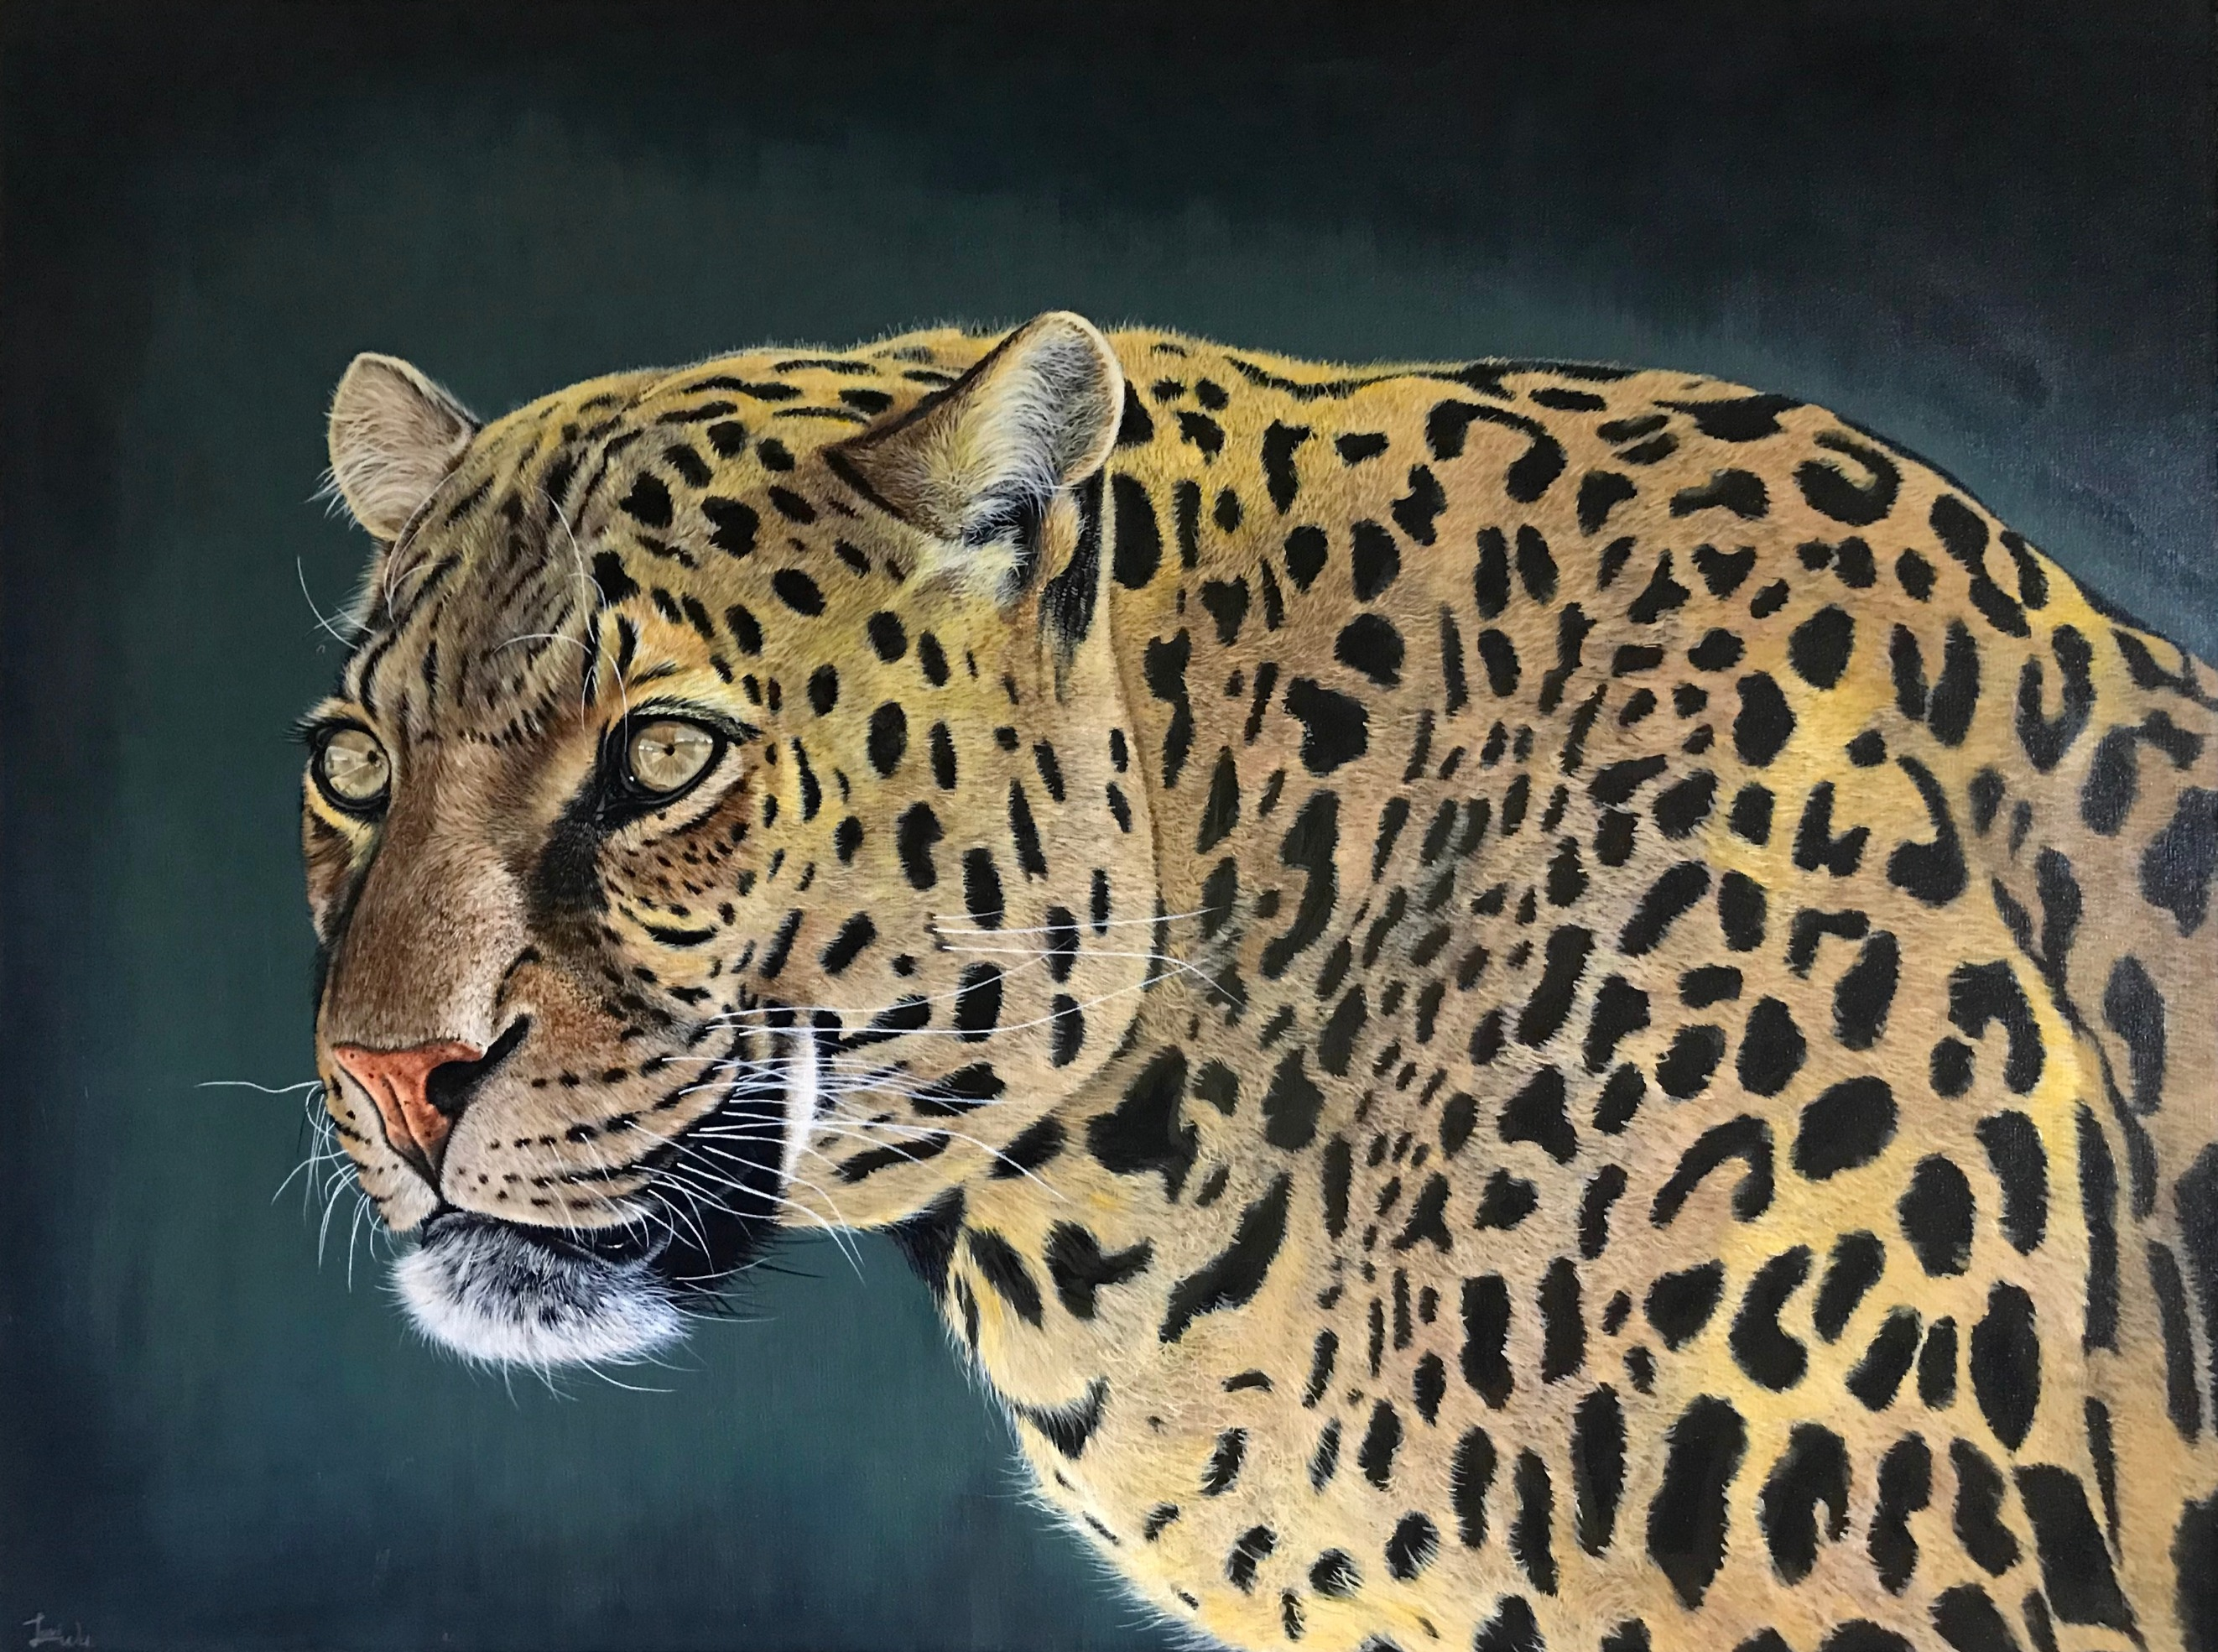 "Jaguar 30"" x 40"" Acrylic - Available"